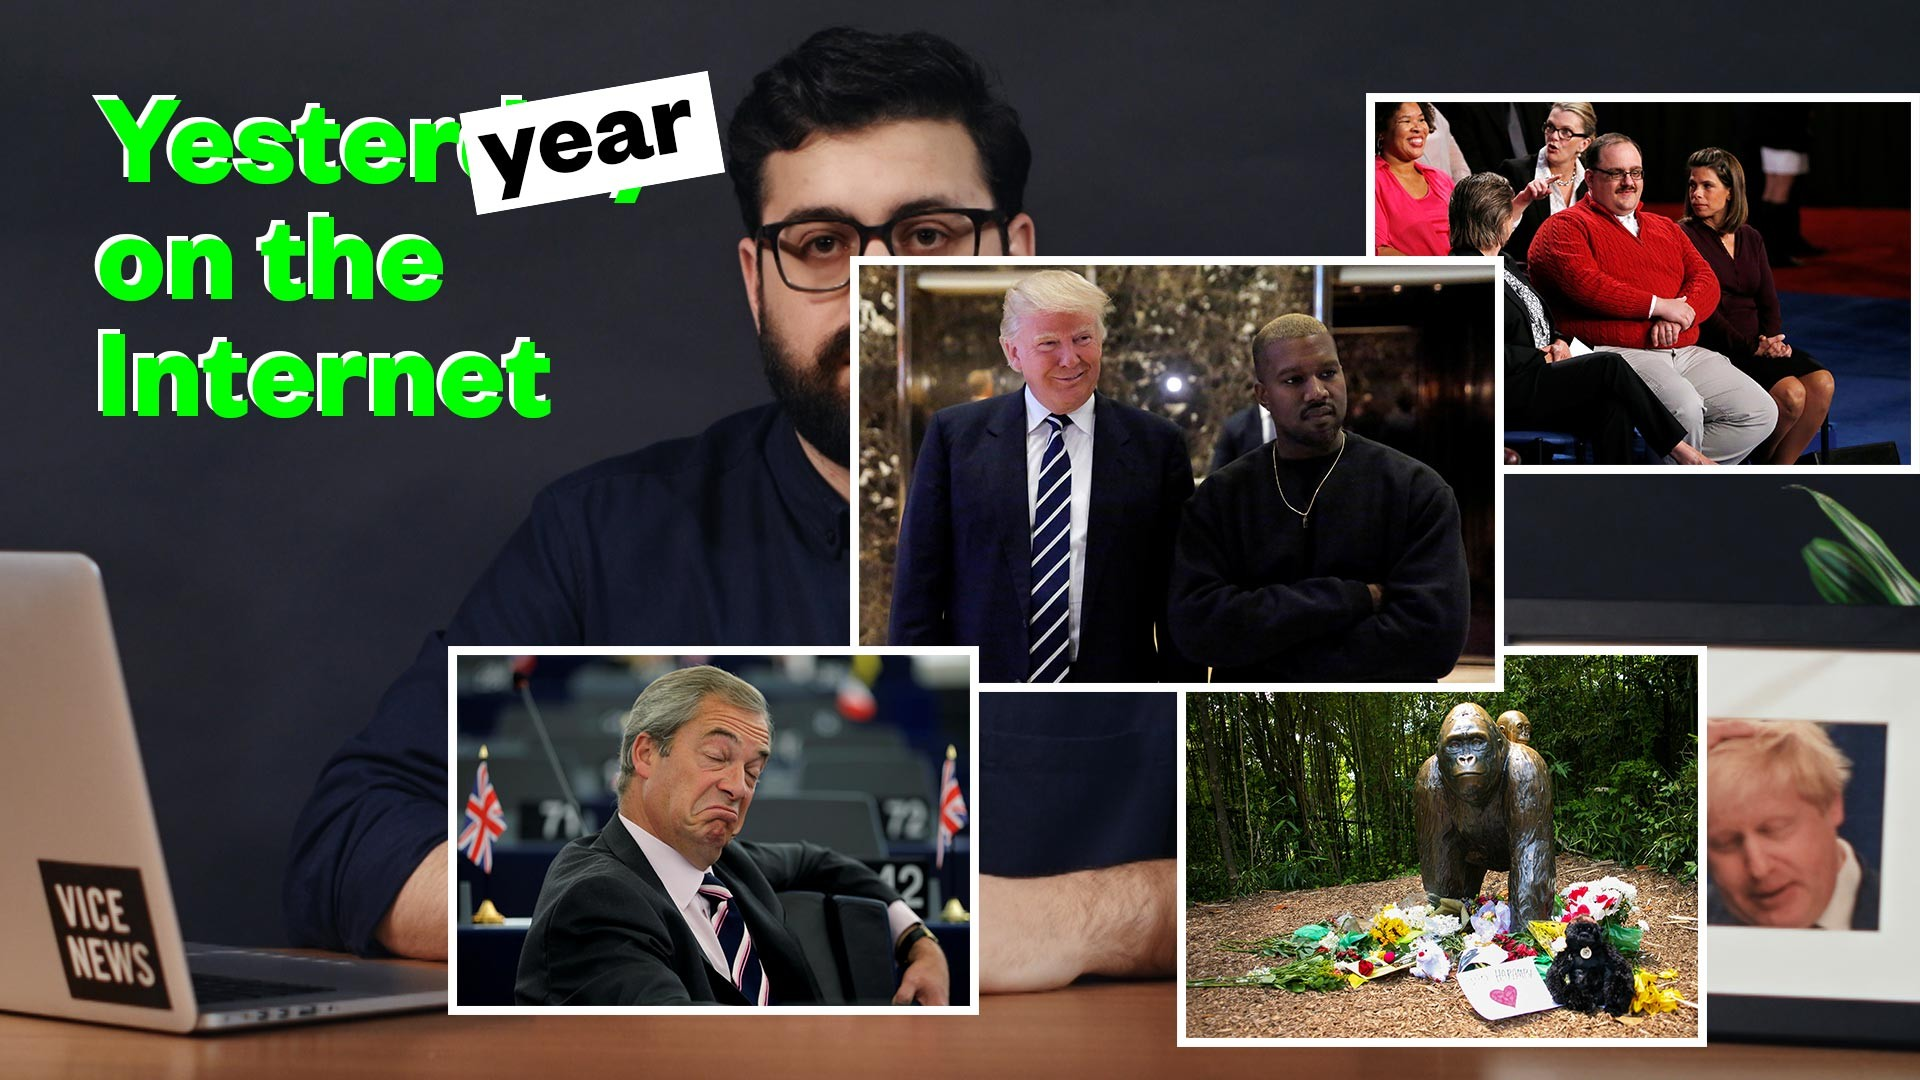 Yester-year on the Internet: A look back on 2016